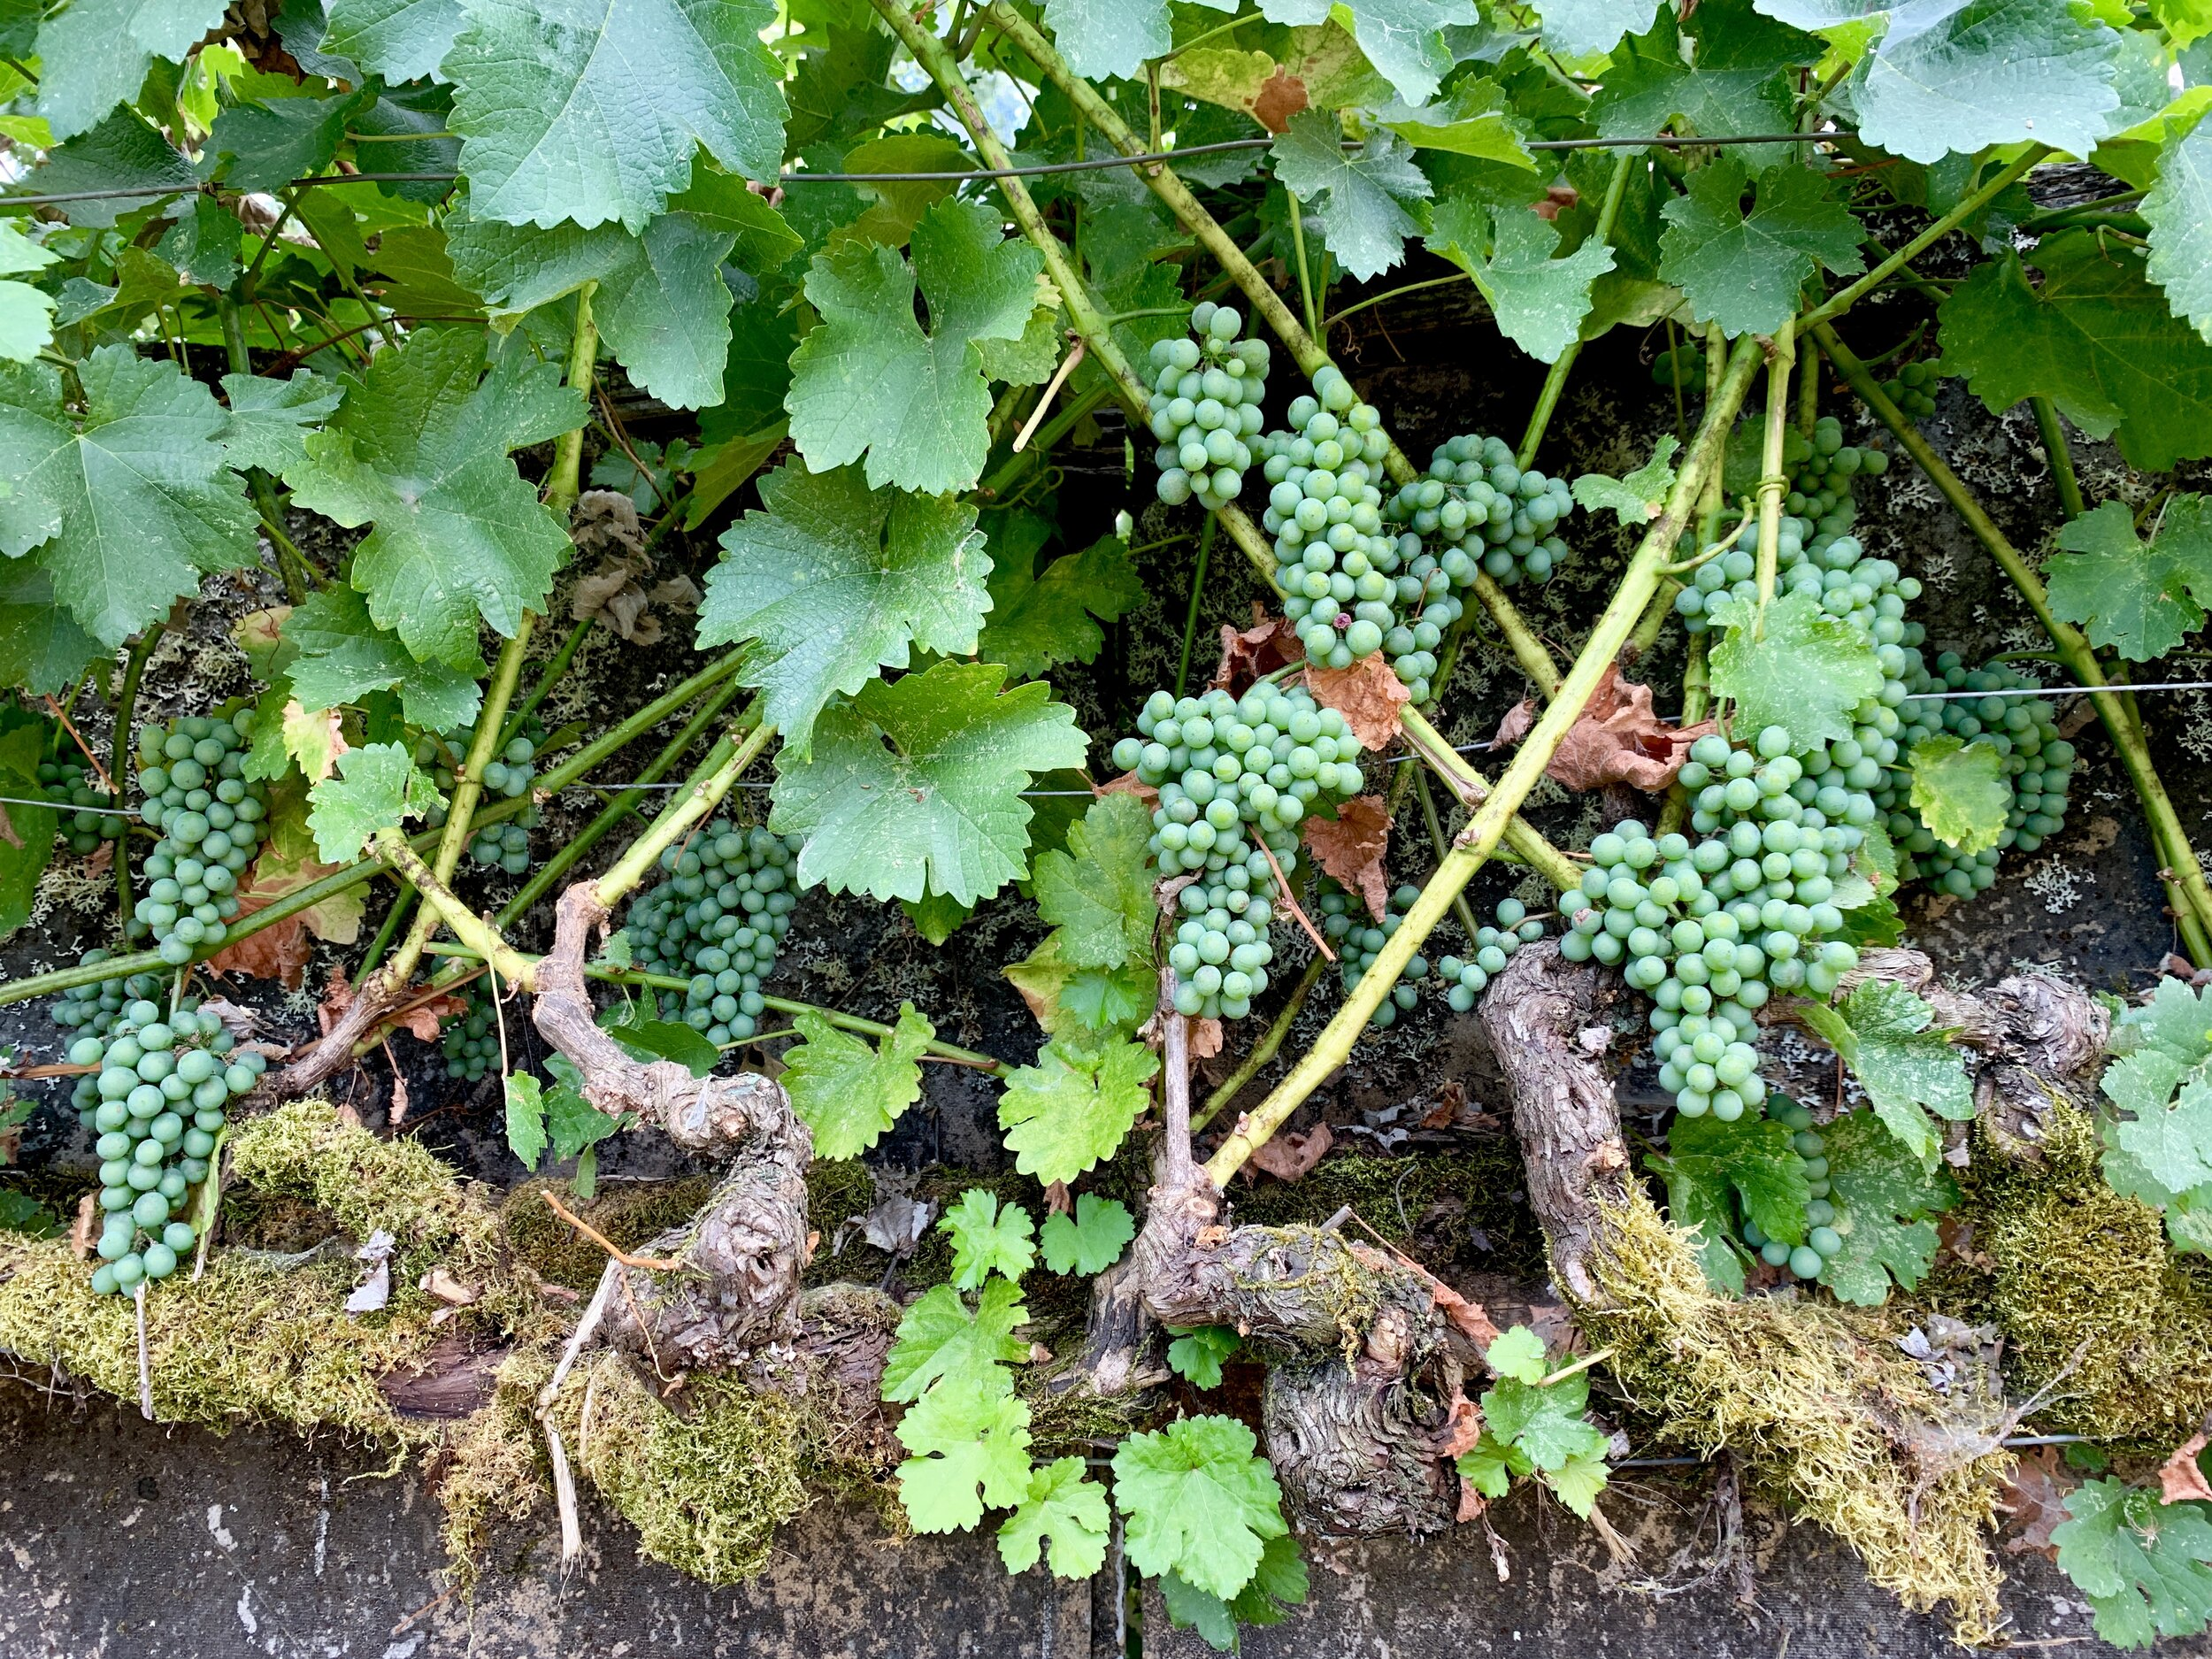 Mossy old Sauvignon Blanc vines twist across the back fence of the property.